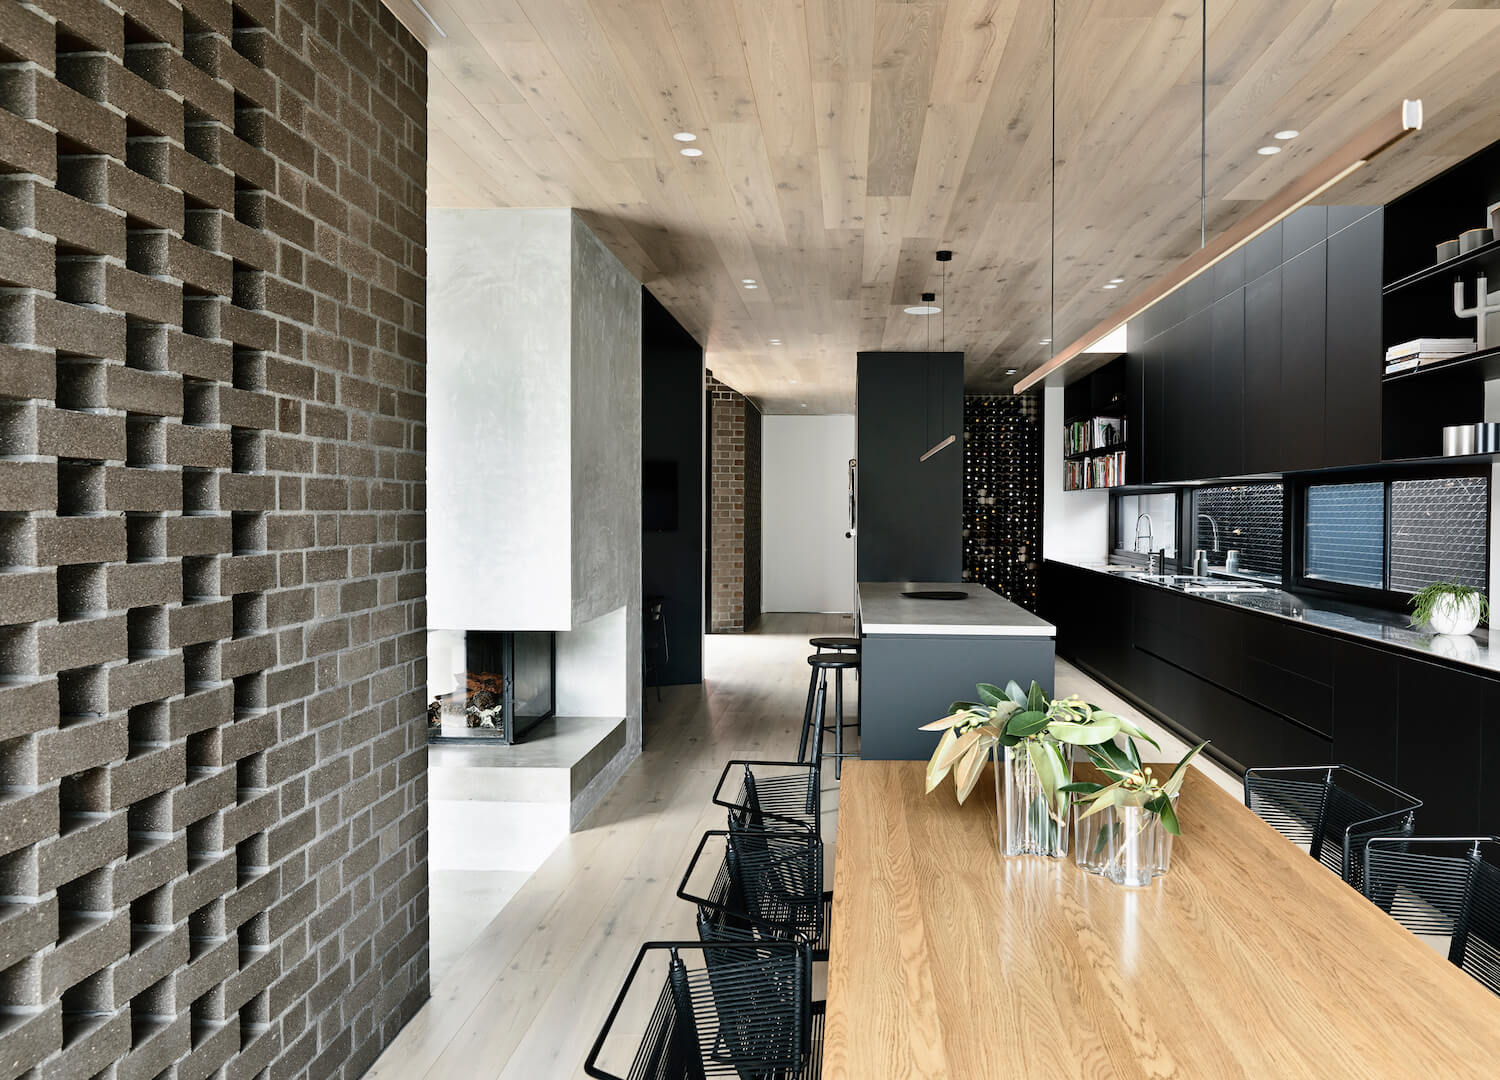 est living york street residence jackson clements burrows architects brickworks 19